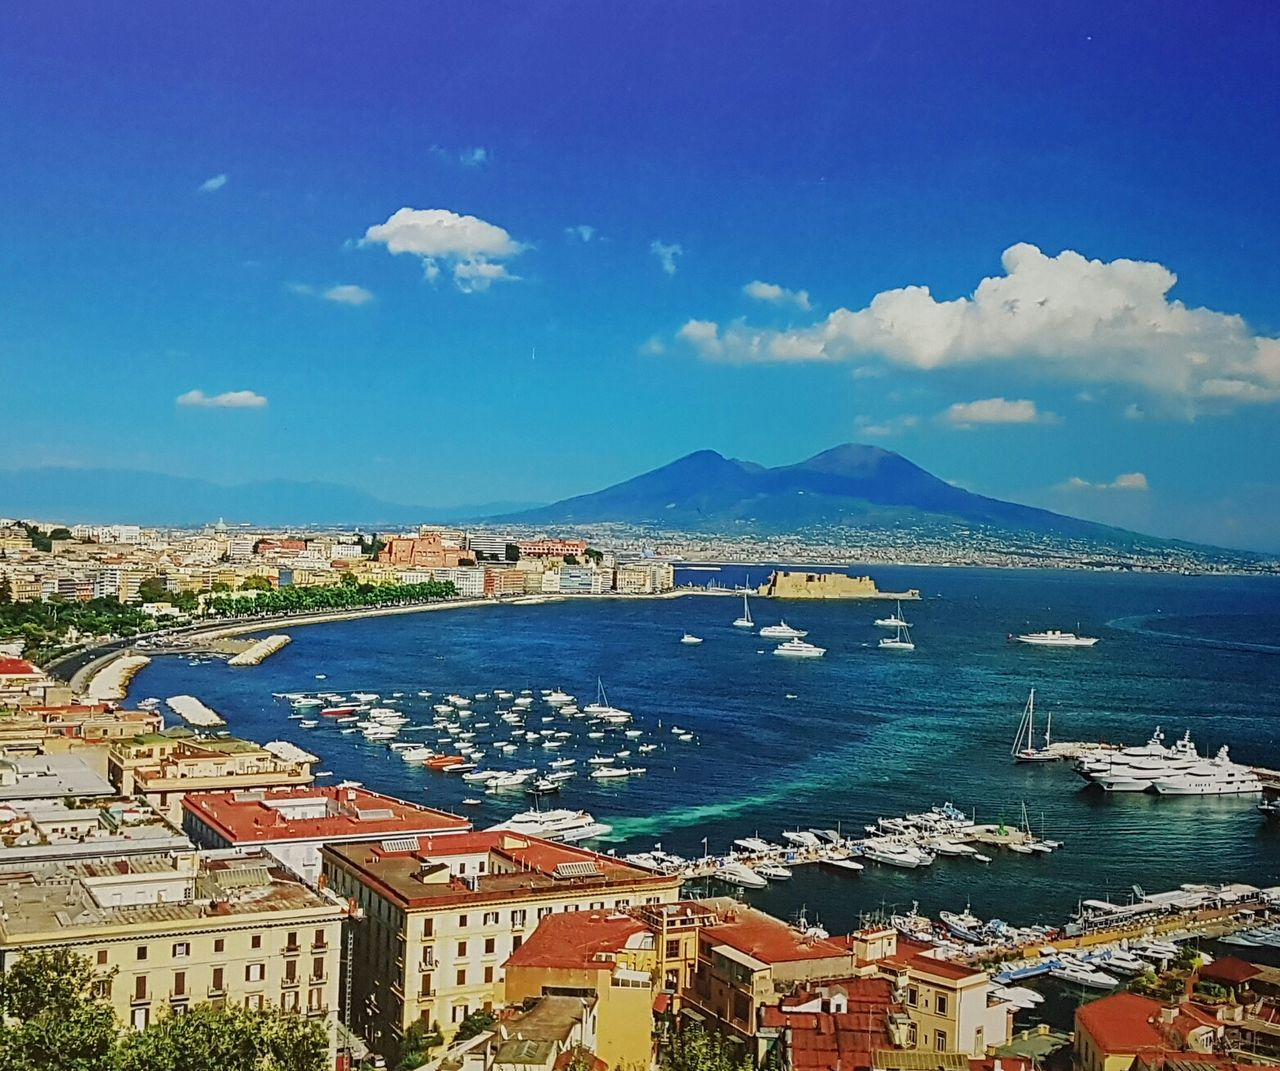 Bay of Napoli from posilippo, Sea Travel Destinations City Mountain Sky Cityscape Outdoors Urban Skyline Architecture Mobile Photography Enjoying Life Battle Of The Cities City Center Blue Cloud - Sky Water Landscape City View  Sea Life Waterfront Napoli Napoli_naples Napoli Italy